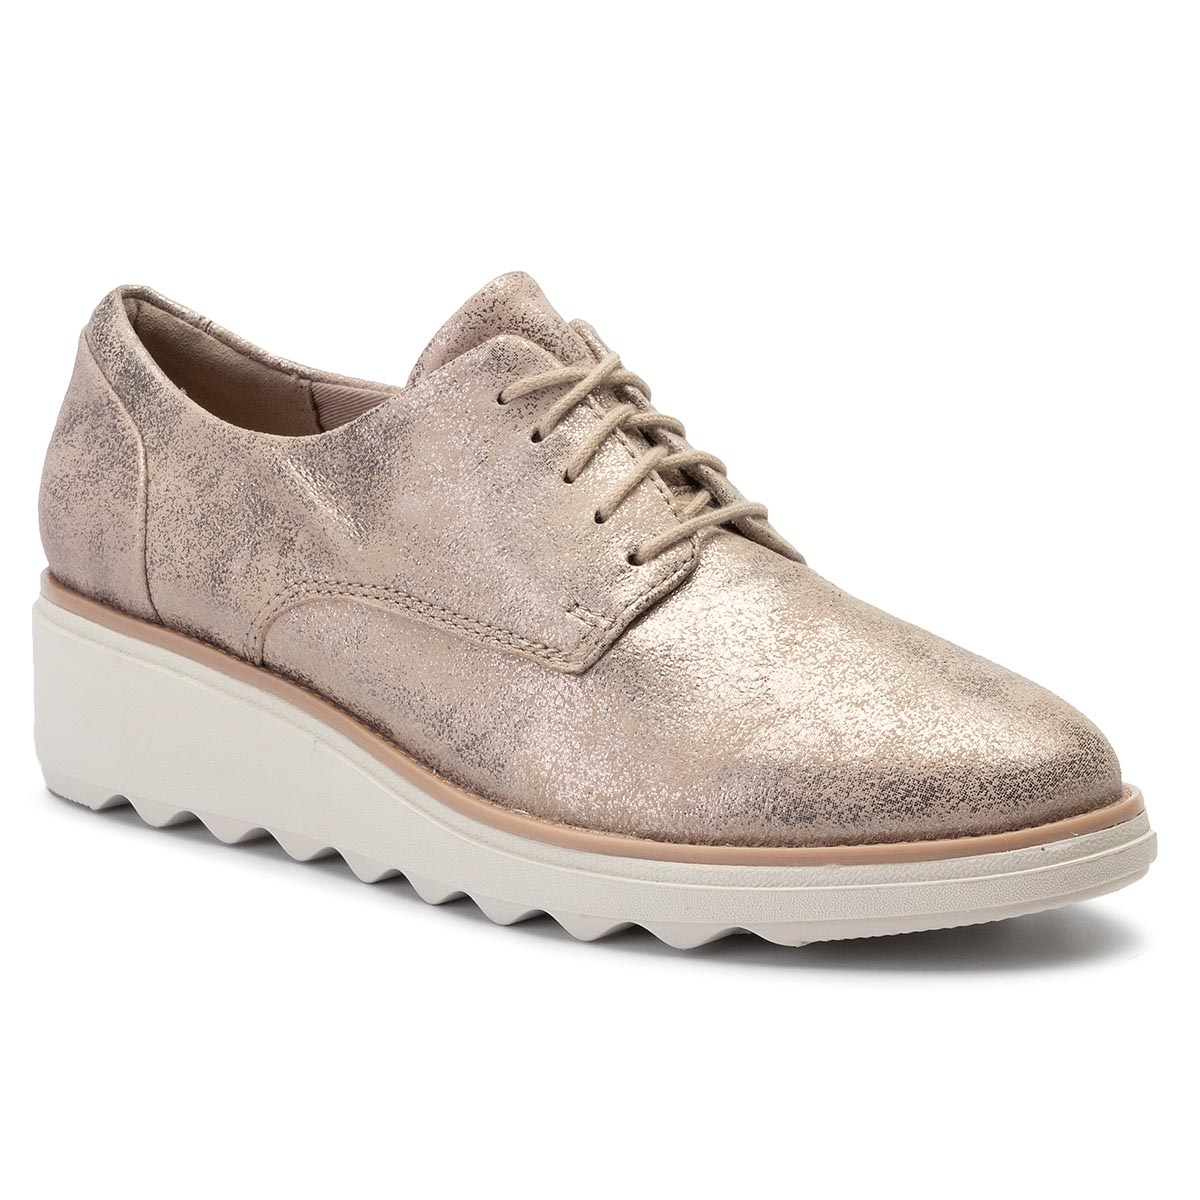 Oxford CLARKS - Sharon Crystal 261400714 Pewter